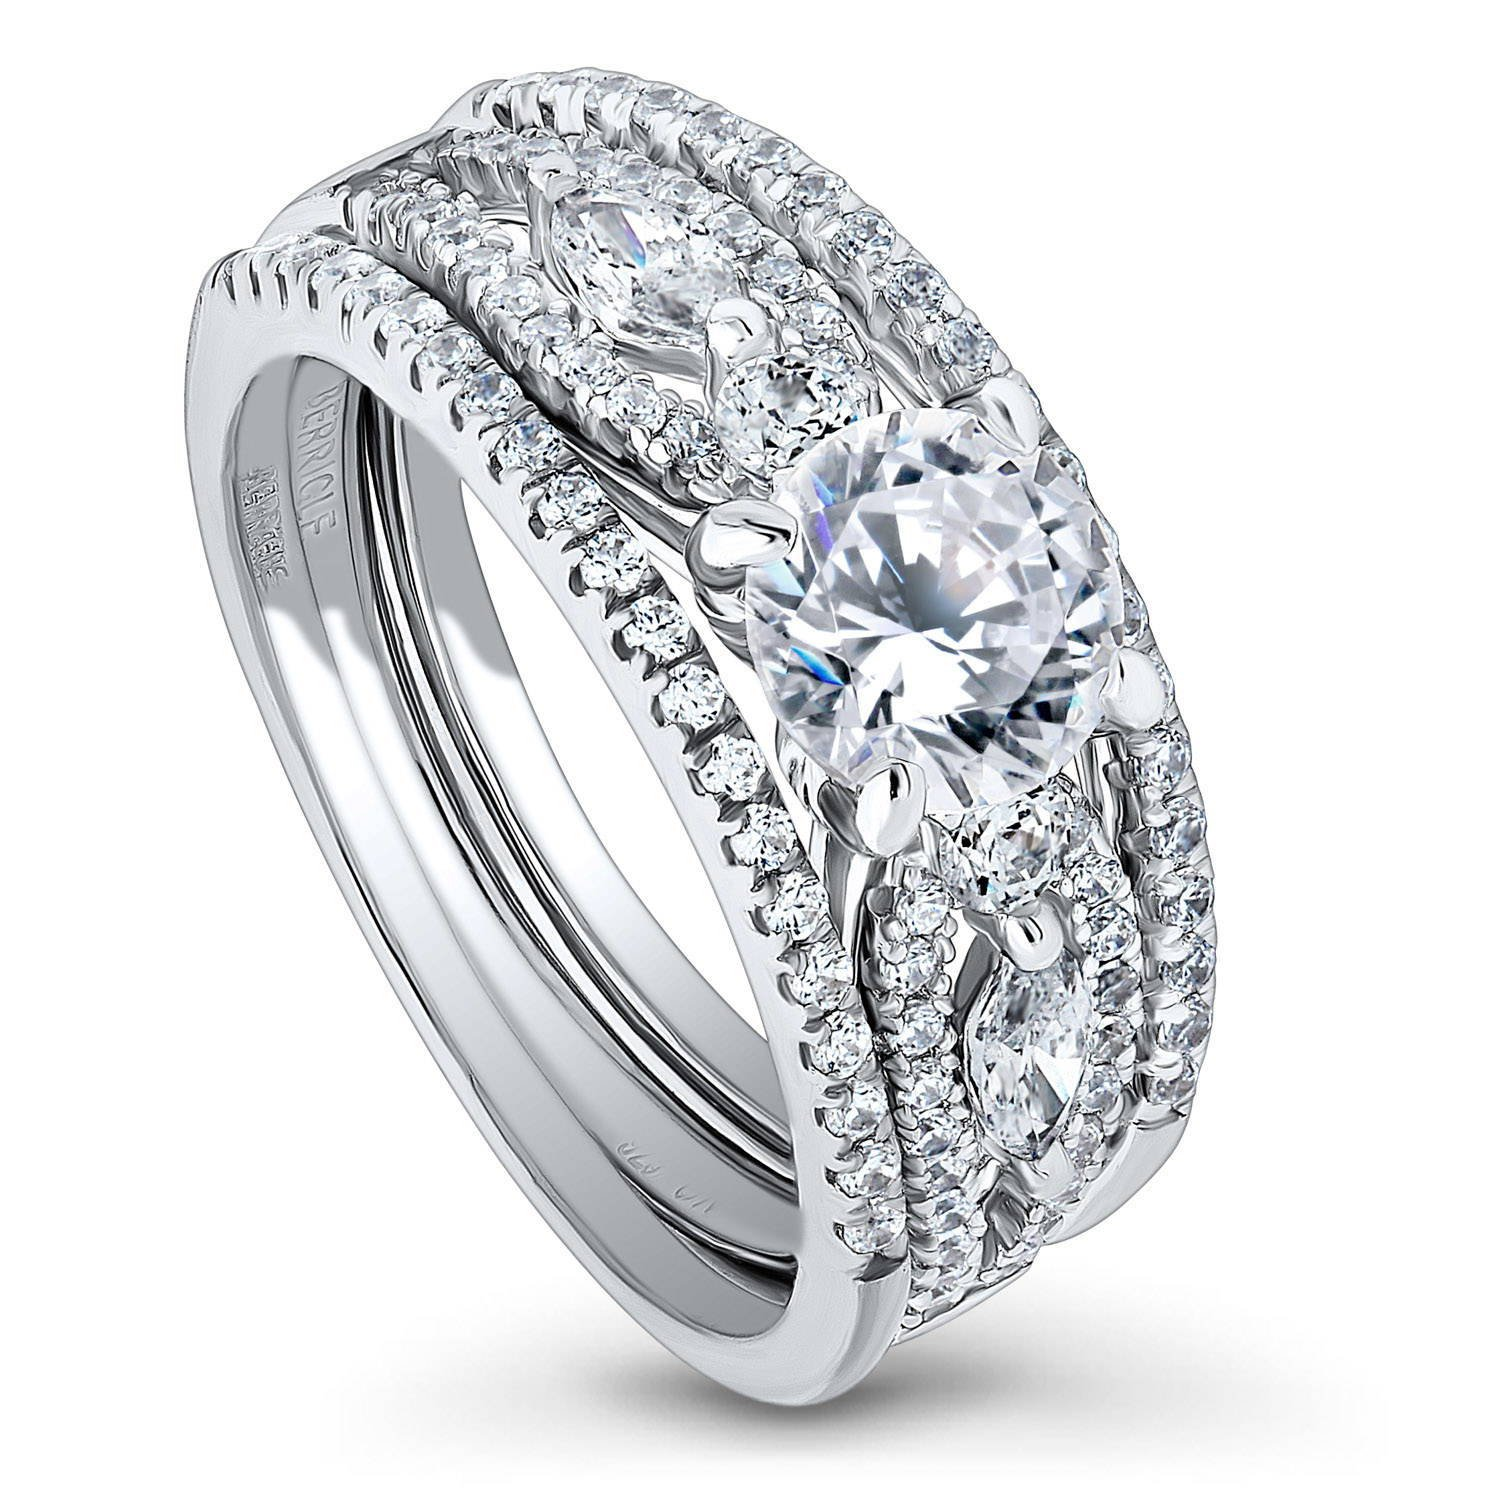 BERRICLE Rhodium Plated Sterling Silver Solitaire Engagement Wedding Ring Set Made with Swarovski Zirconia Round 1.81 CTW Size 5 by BERRICLE